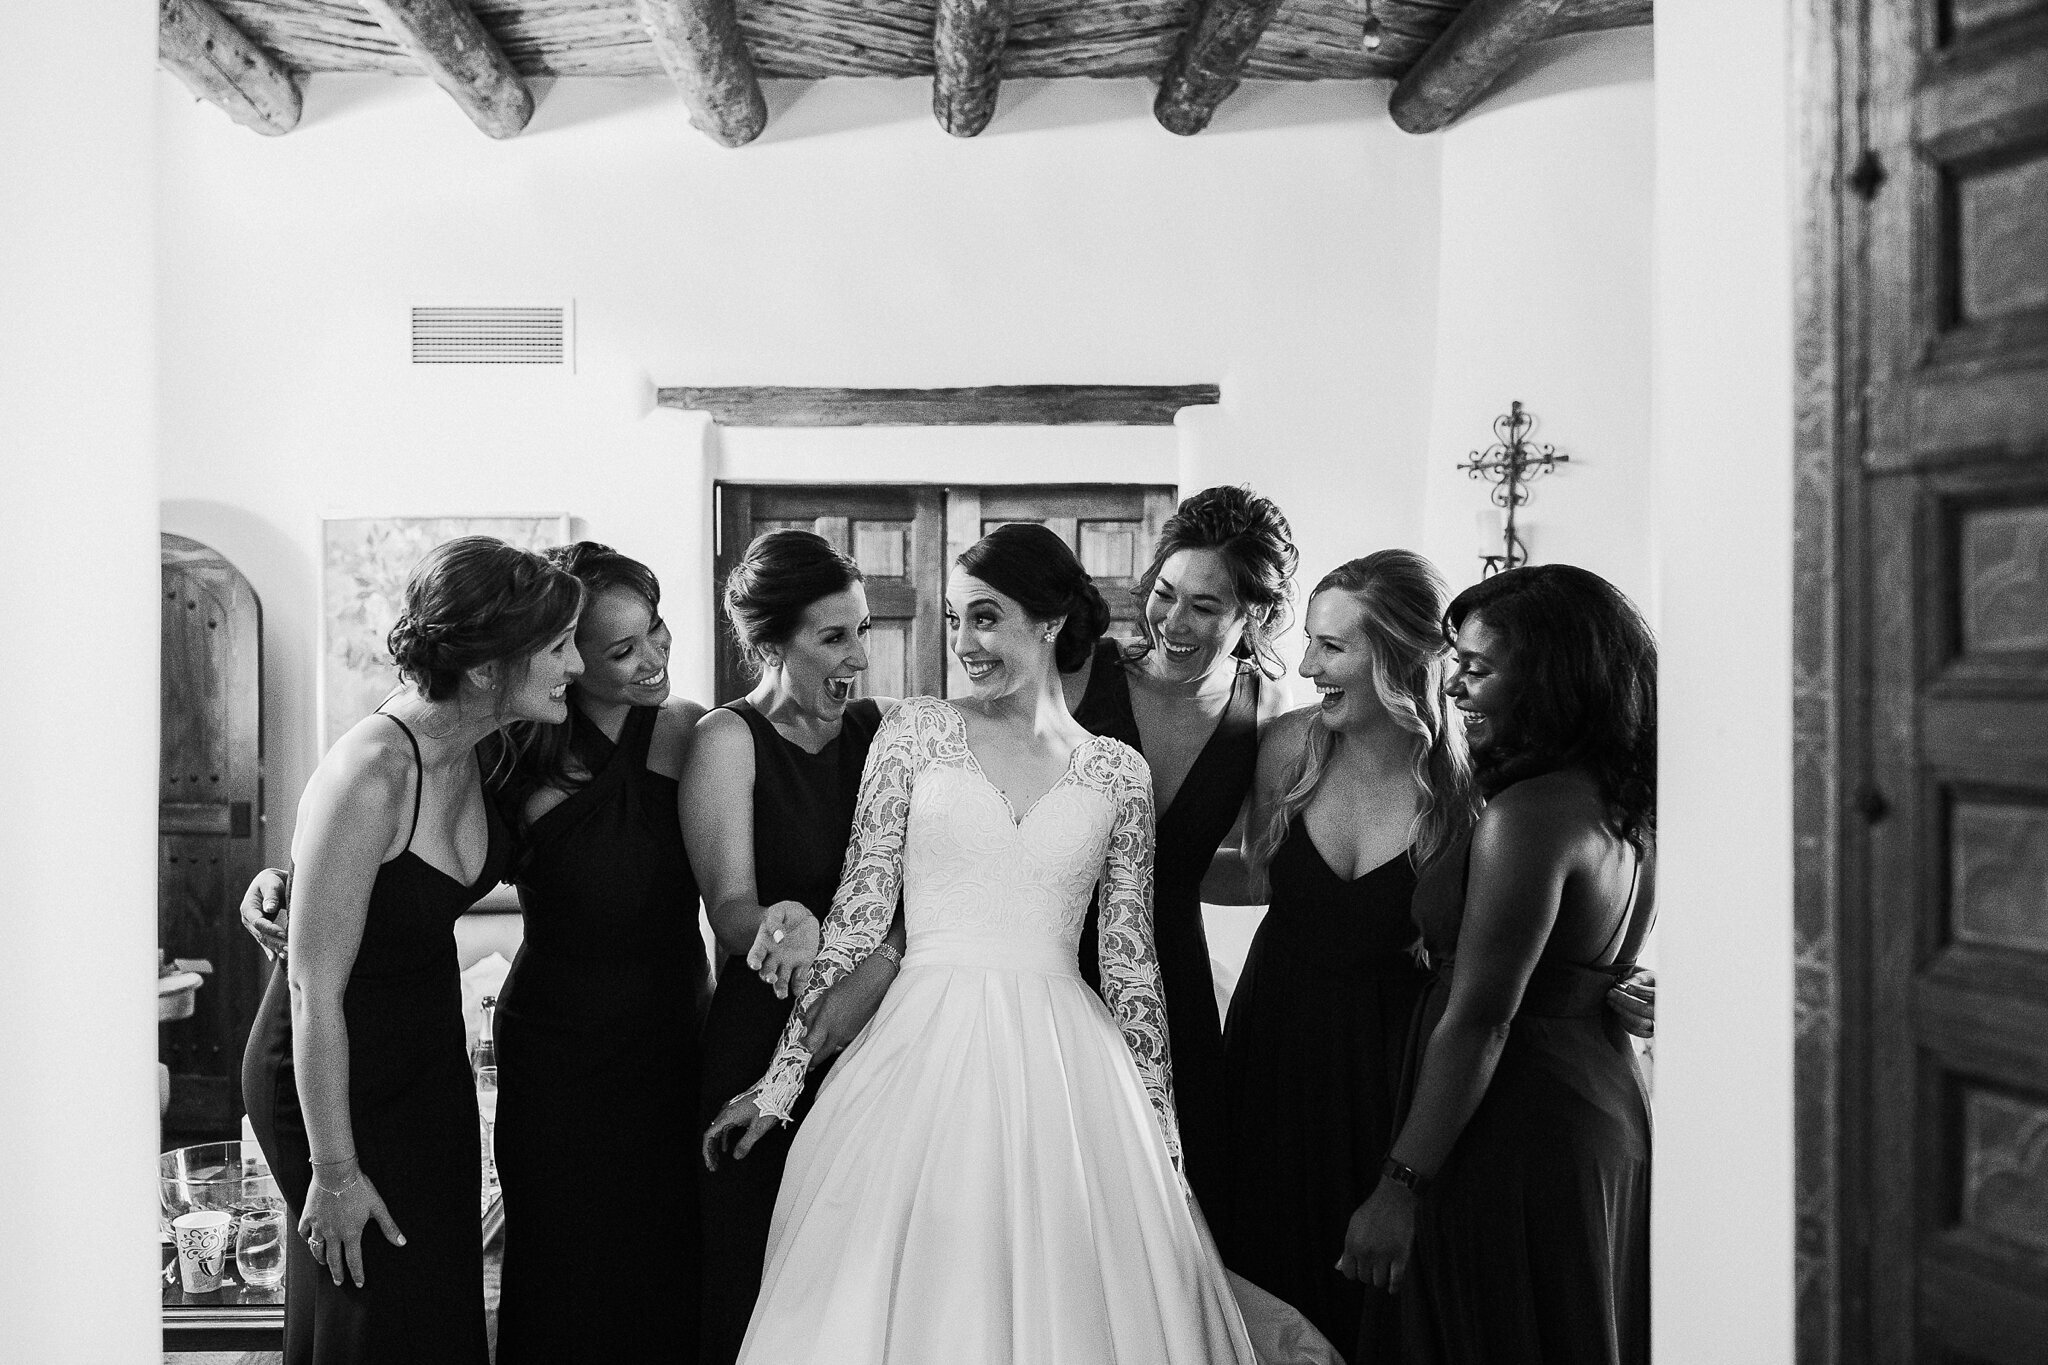 Alicia+lucia+photography+-+albuquerque+wedding+photographer+-+santa+fe+wedding+photography+-+new+mexico+wedding+photographer+-+new+mexico+wedding+-+hindu+wedding+-+catholic+wedding+-+multicultural+wedding+-+santa+fe+wedding_0015.jpg